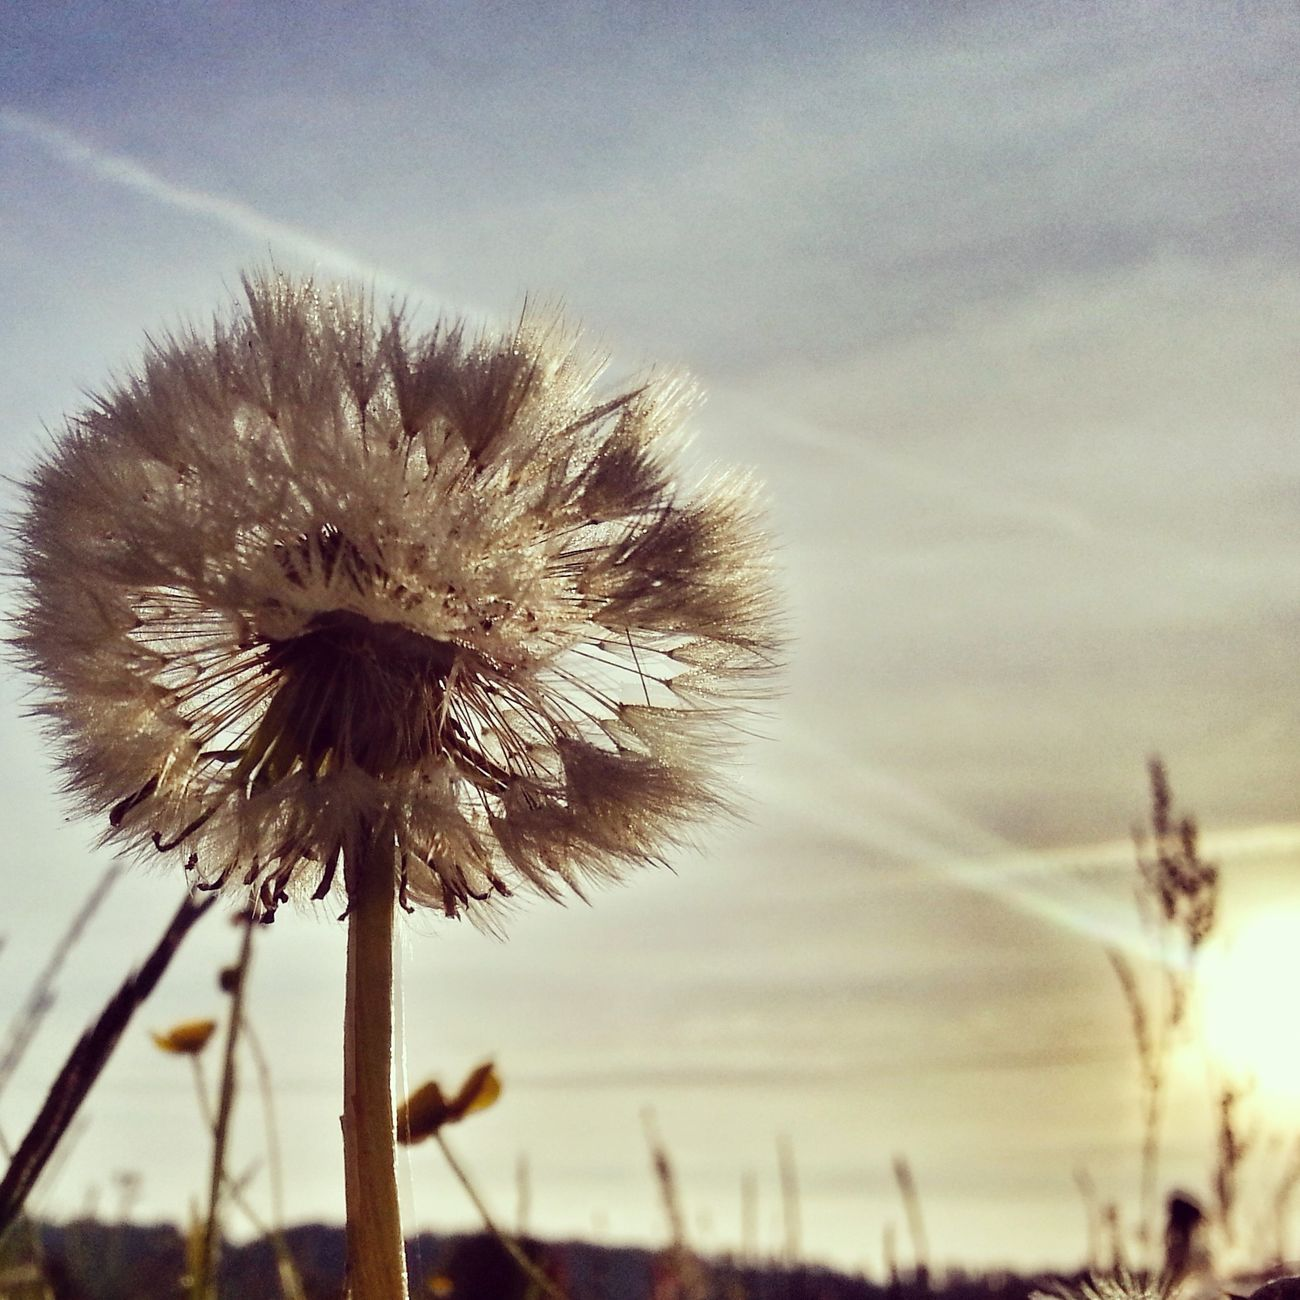 Sunbeam Dandelion Streamzoofamily Naturelover Enjoying Life Europe